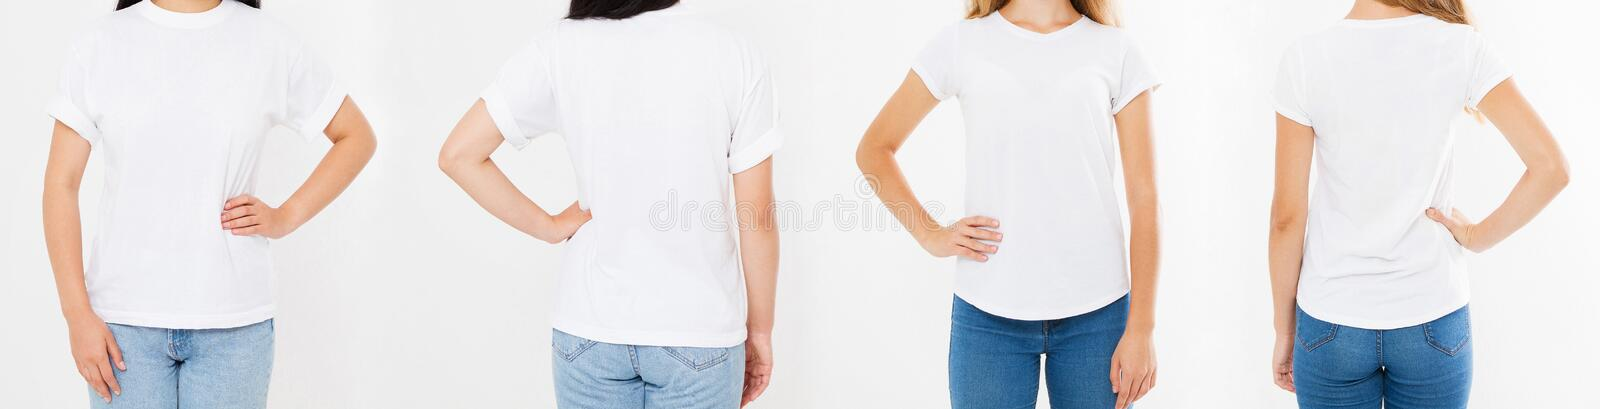 Women white tshirt isolated on white background, two girl t shirt.  stock photos